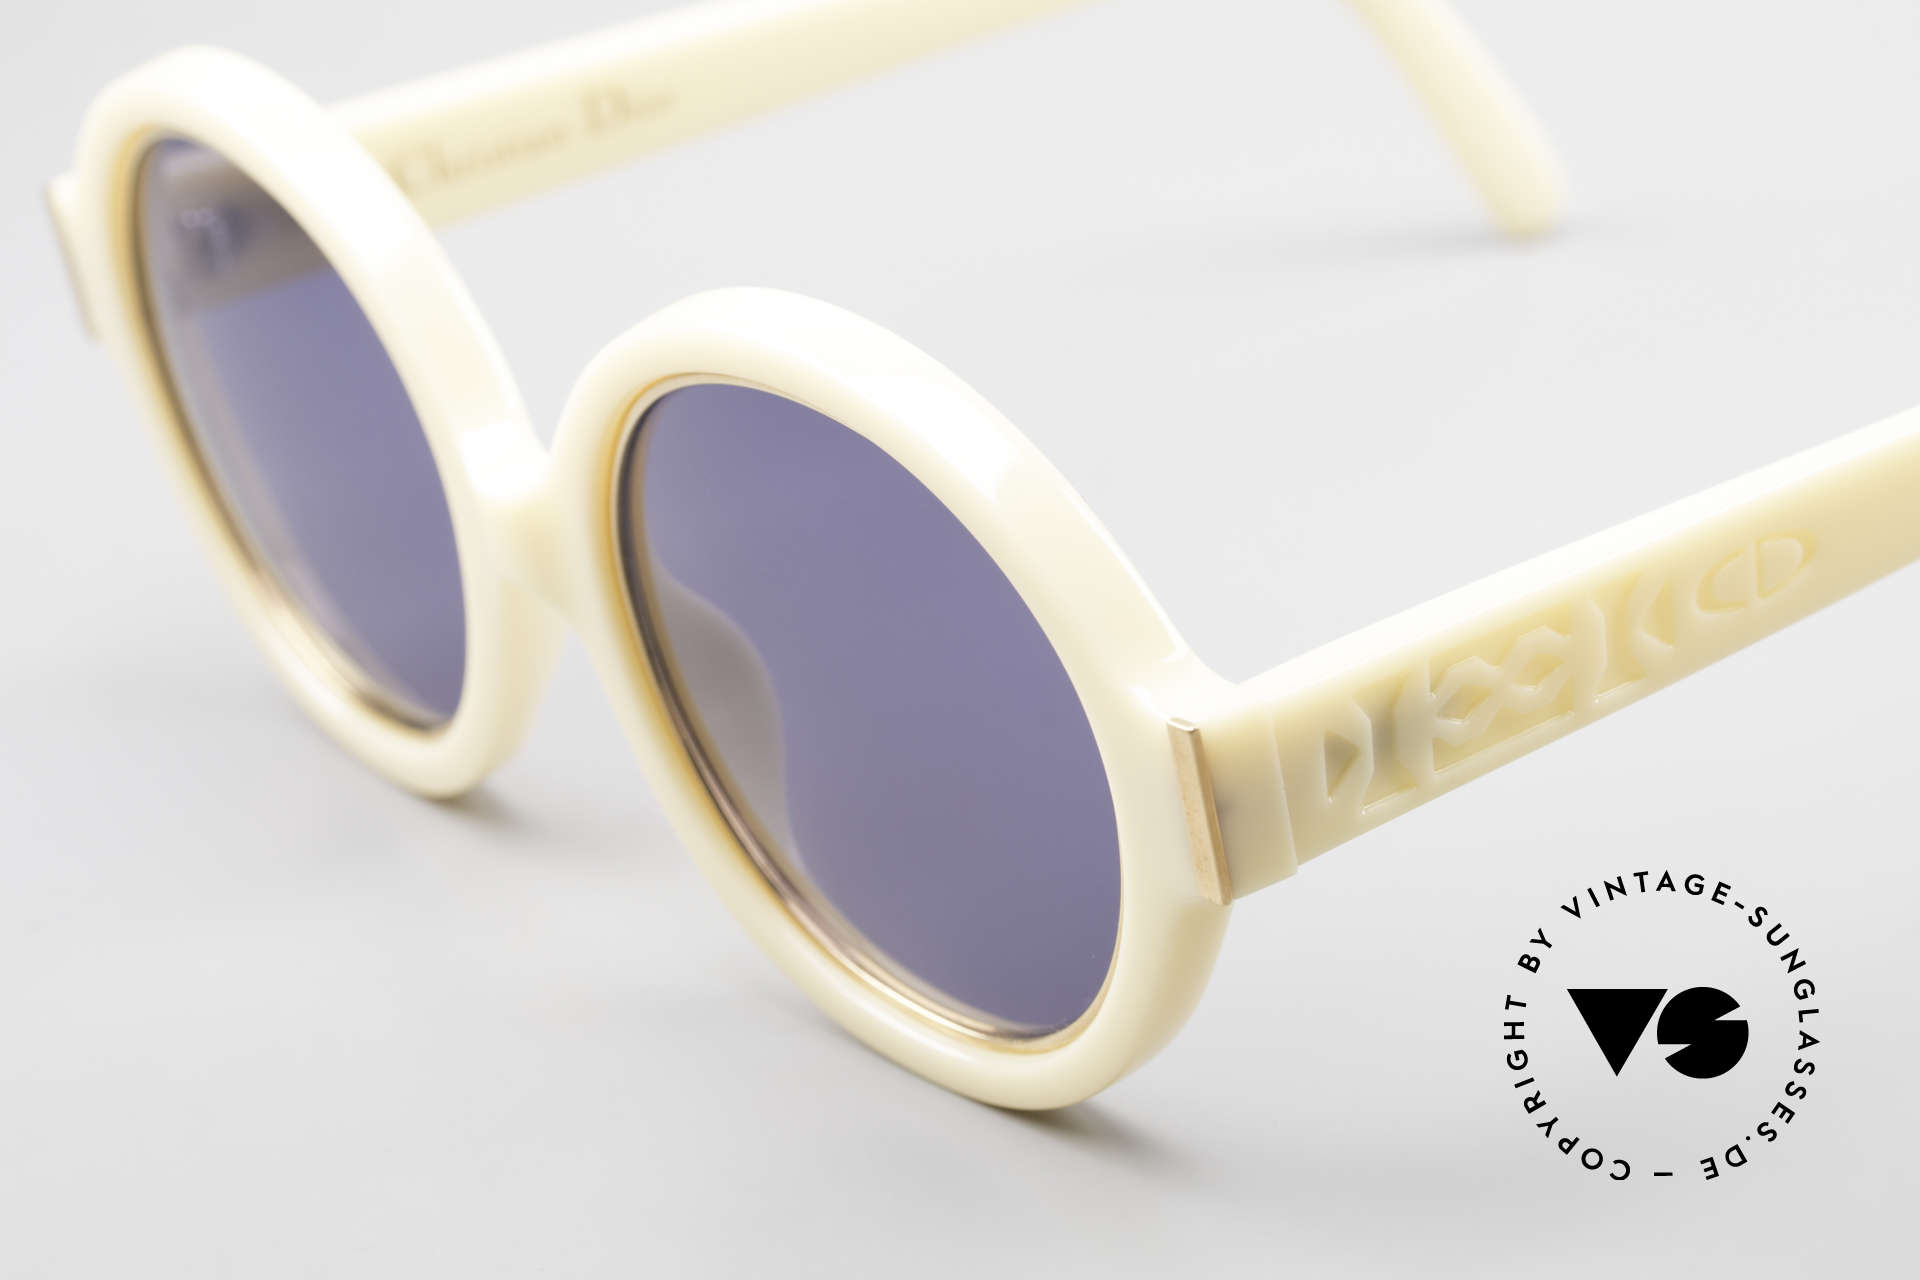 Christian Dior 2446 Round Ladies 80's Sunglasses, sophisticated sunglasses and a true vintage RARITY!, Made for Women